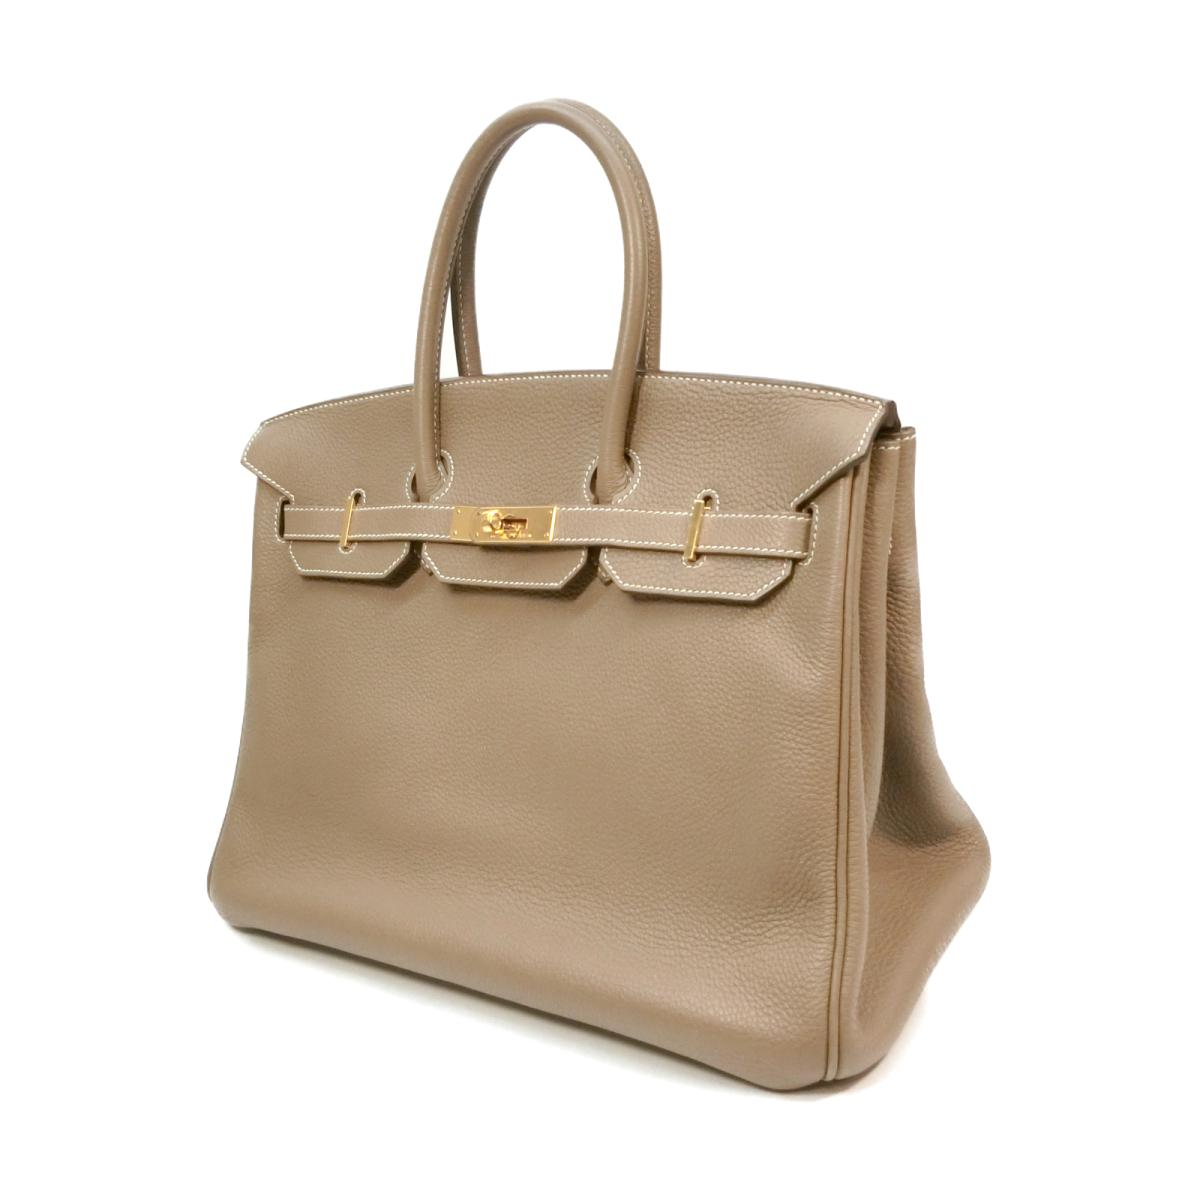 094868a22721c Authentic HERMES Birkin 35 Hand tote Bag Togo leather Etoupe Gray (GHW)